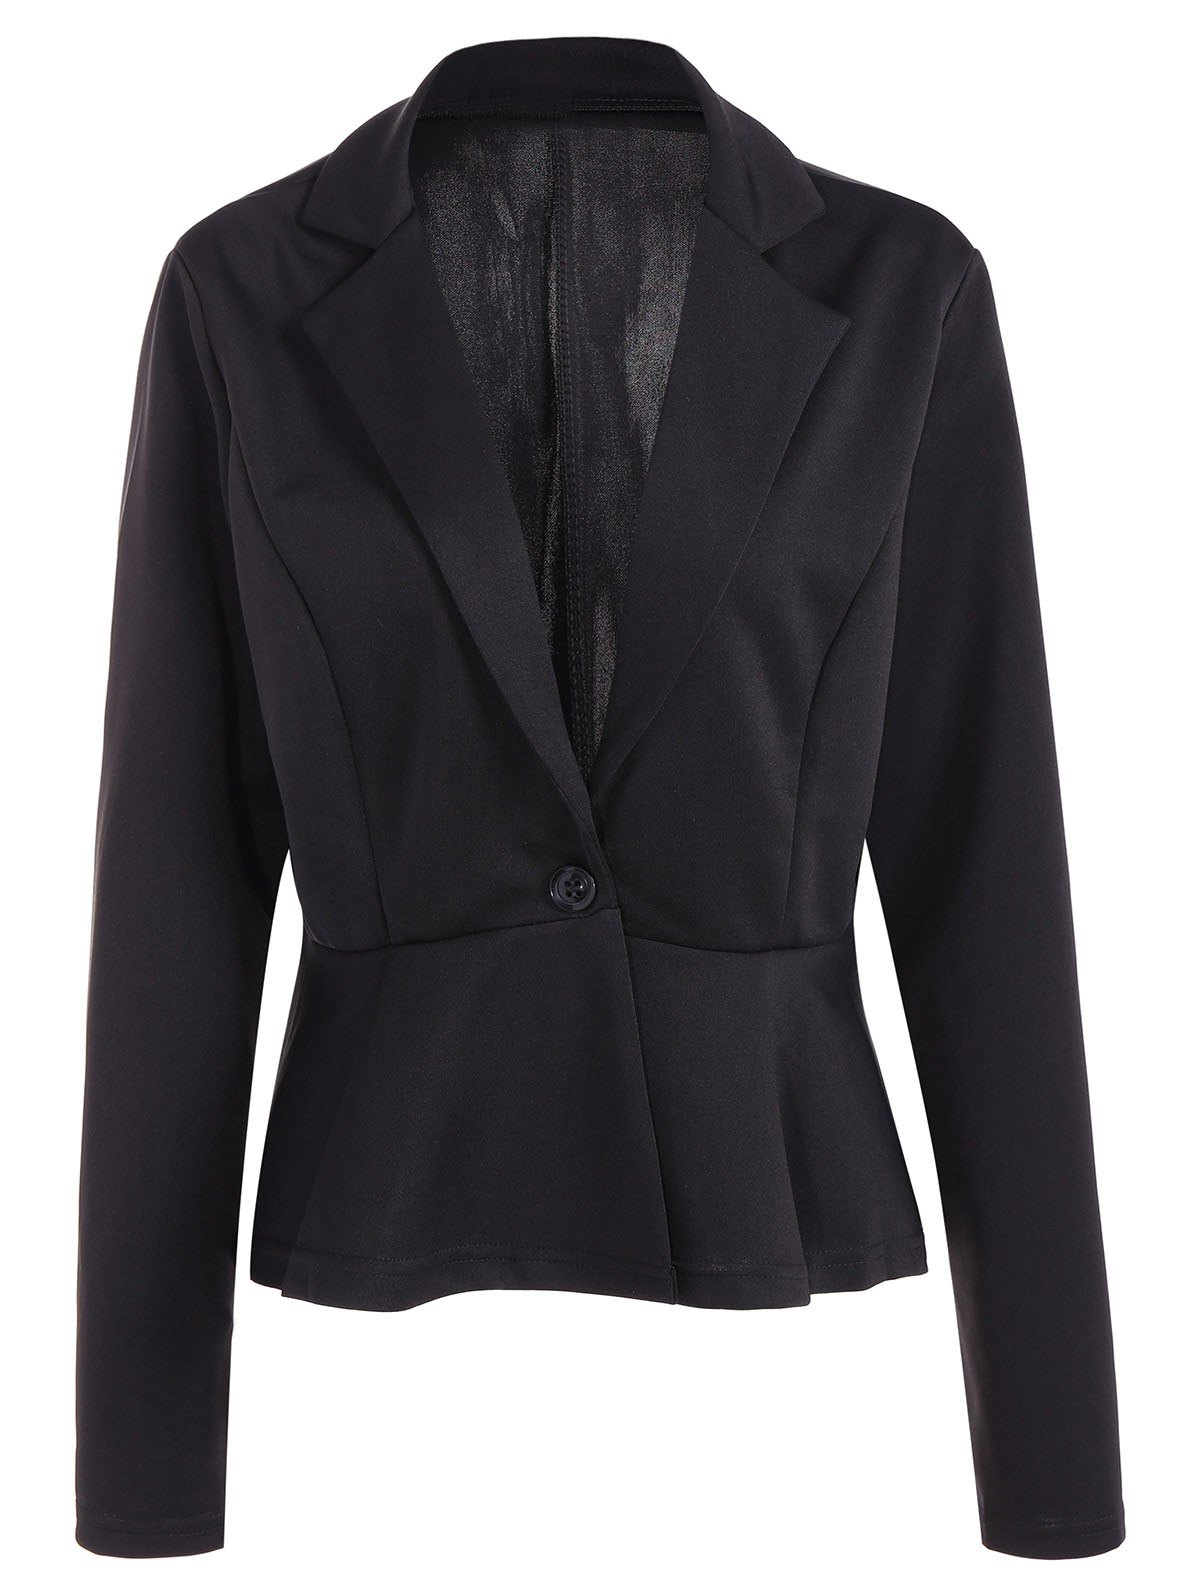 Chic Fitted One Button Jacket Peplum Blazer